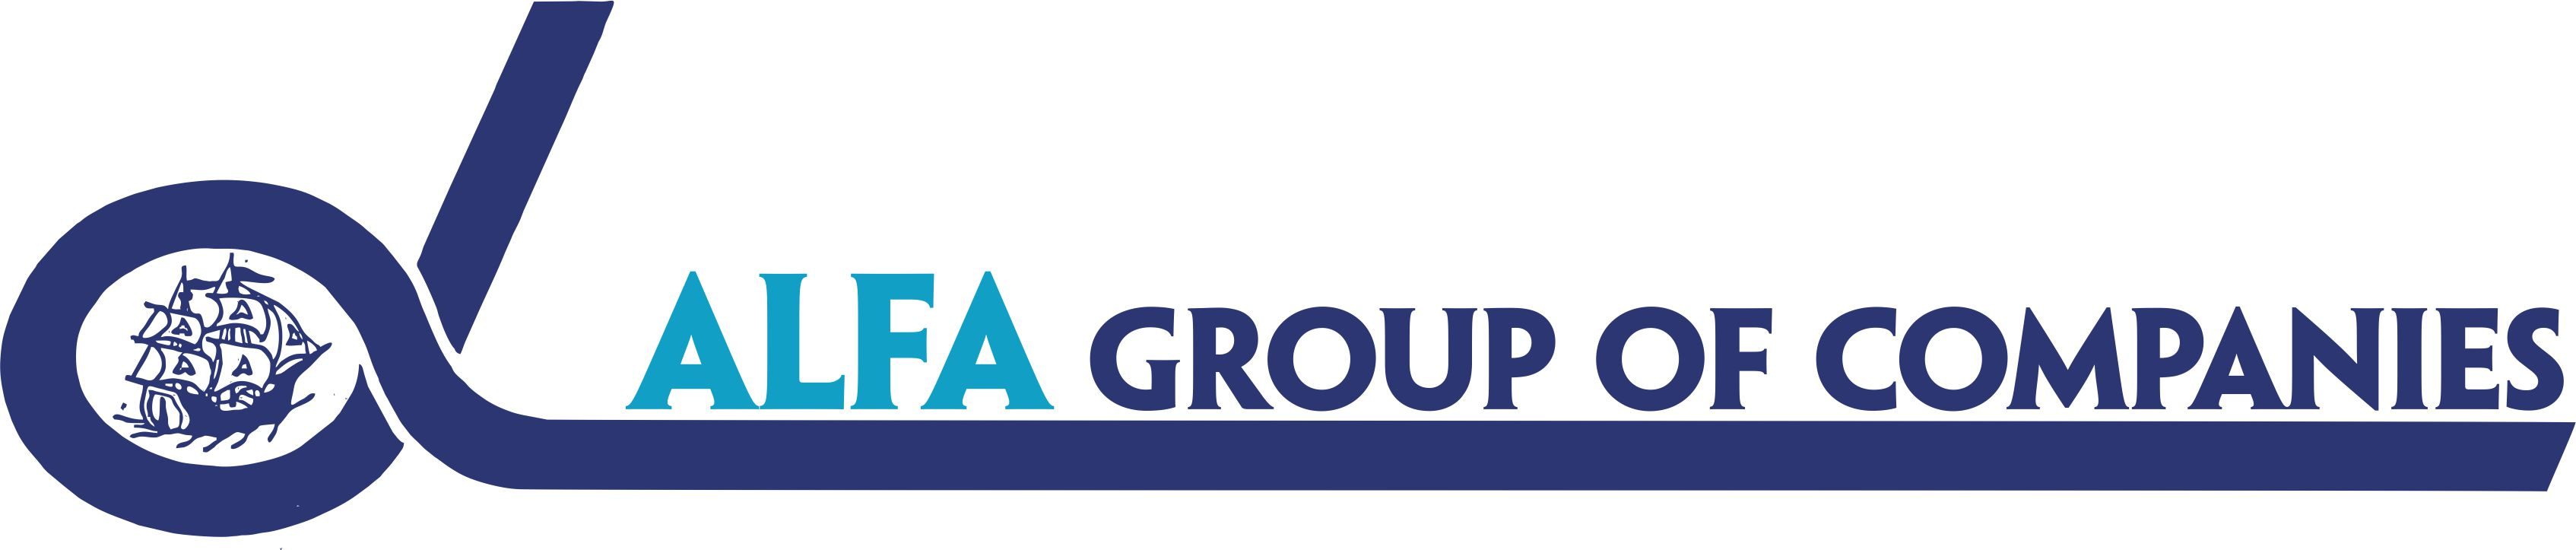 Alfa Group of Companies